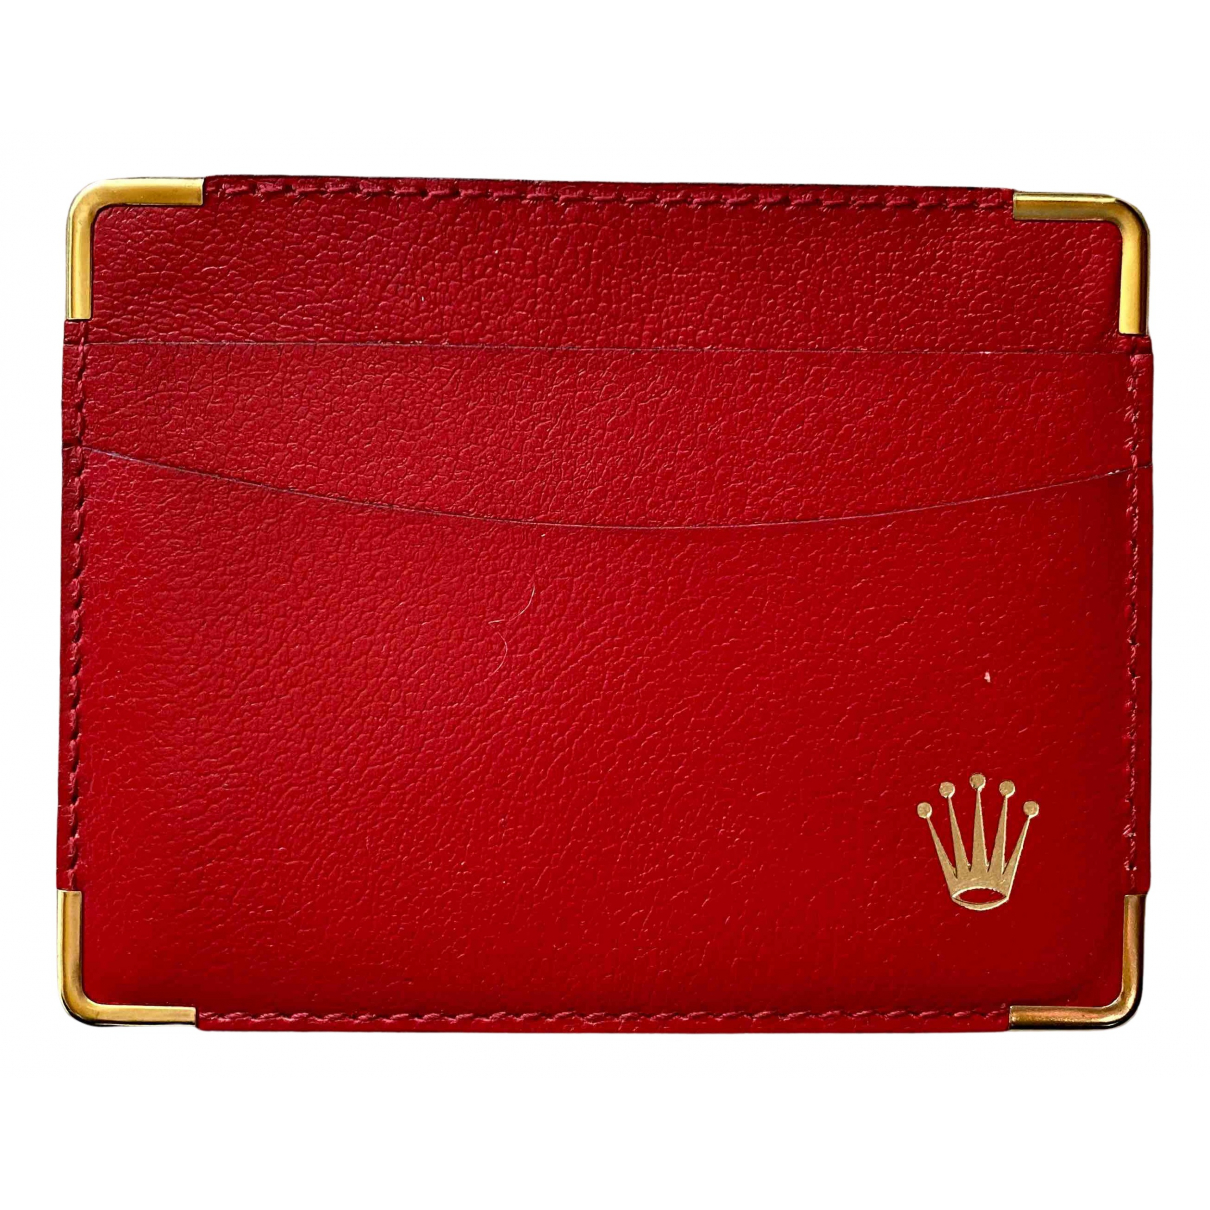 Rolex N Red Leather Purses, wallet & cases for Women N